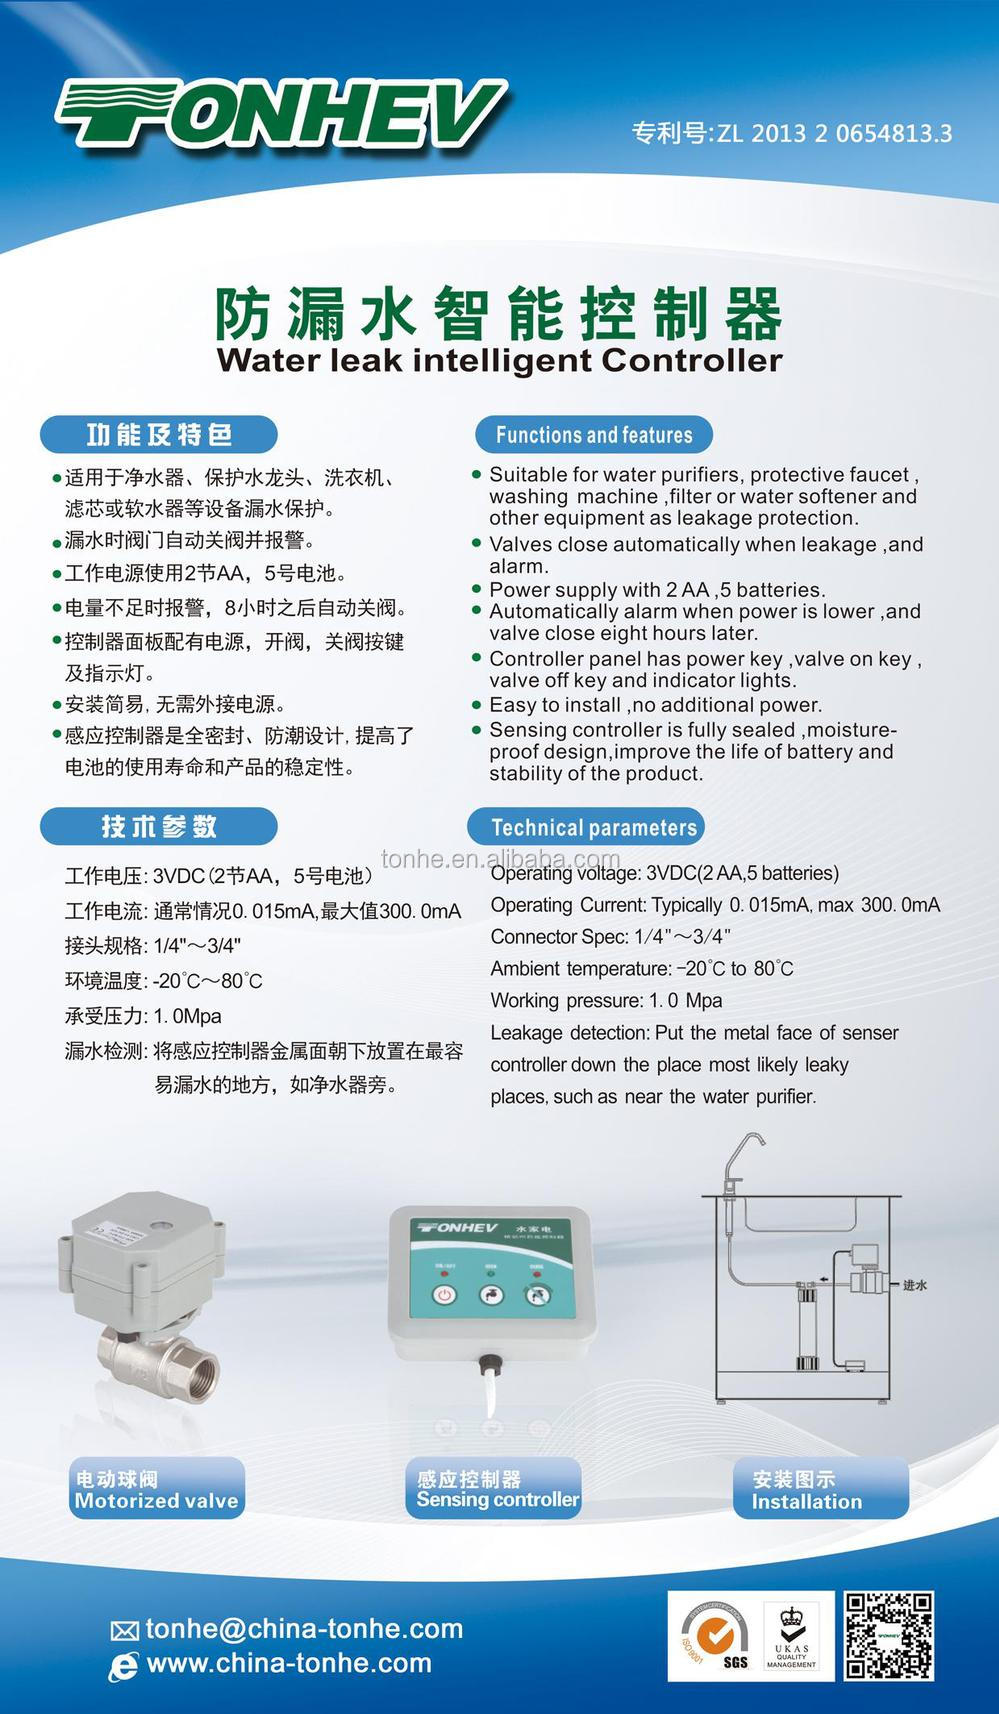 water leak controller with motorized valve 01.JPG